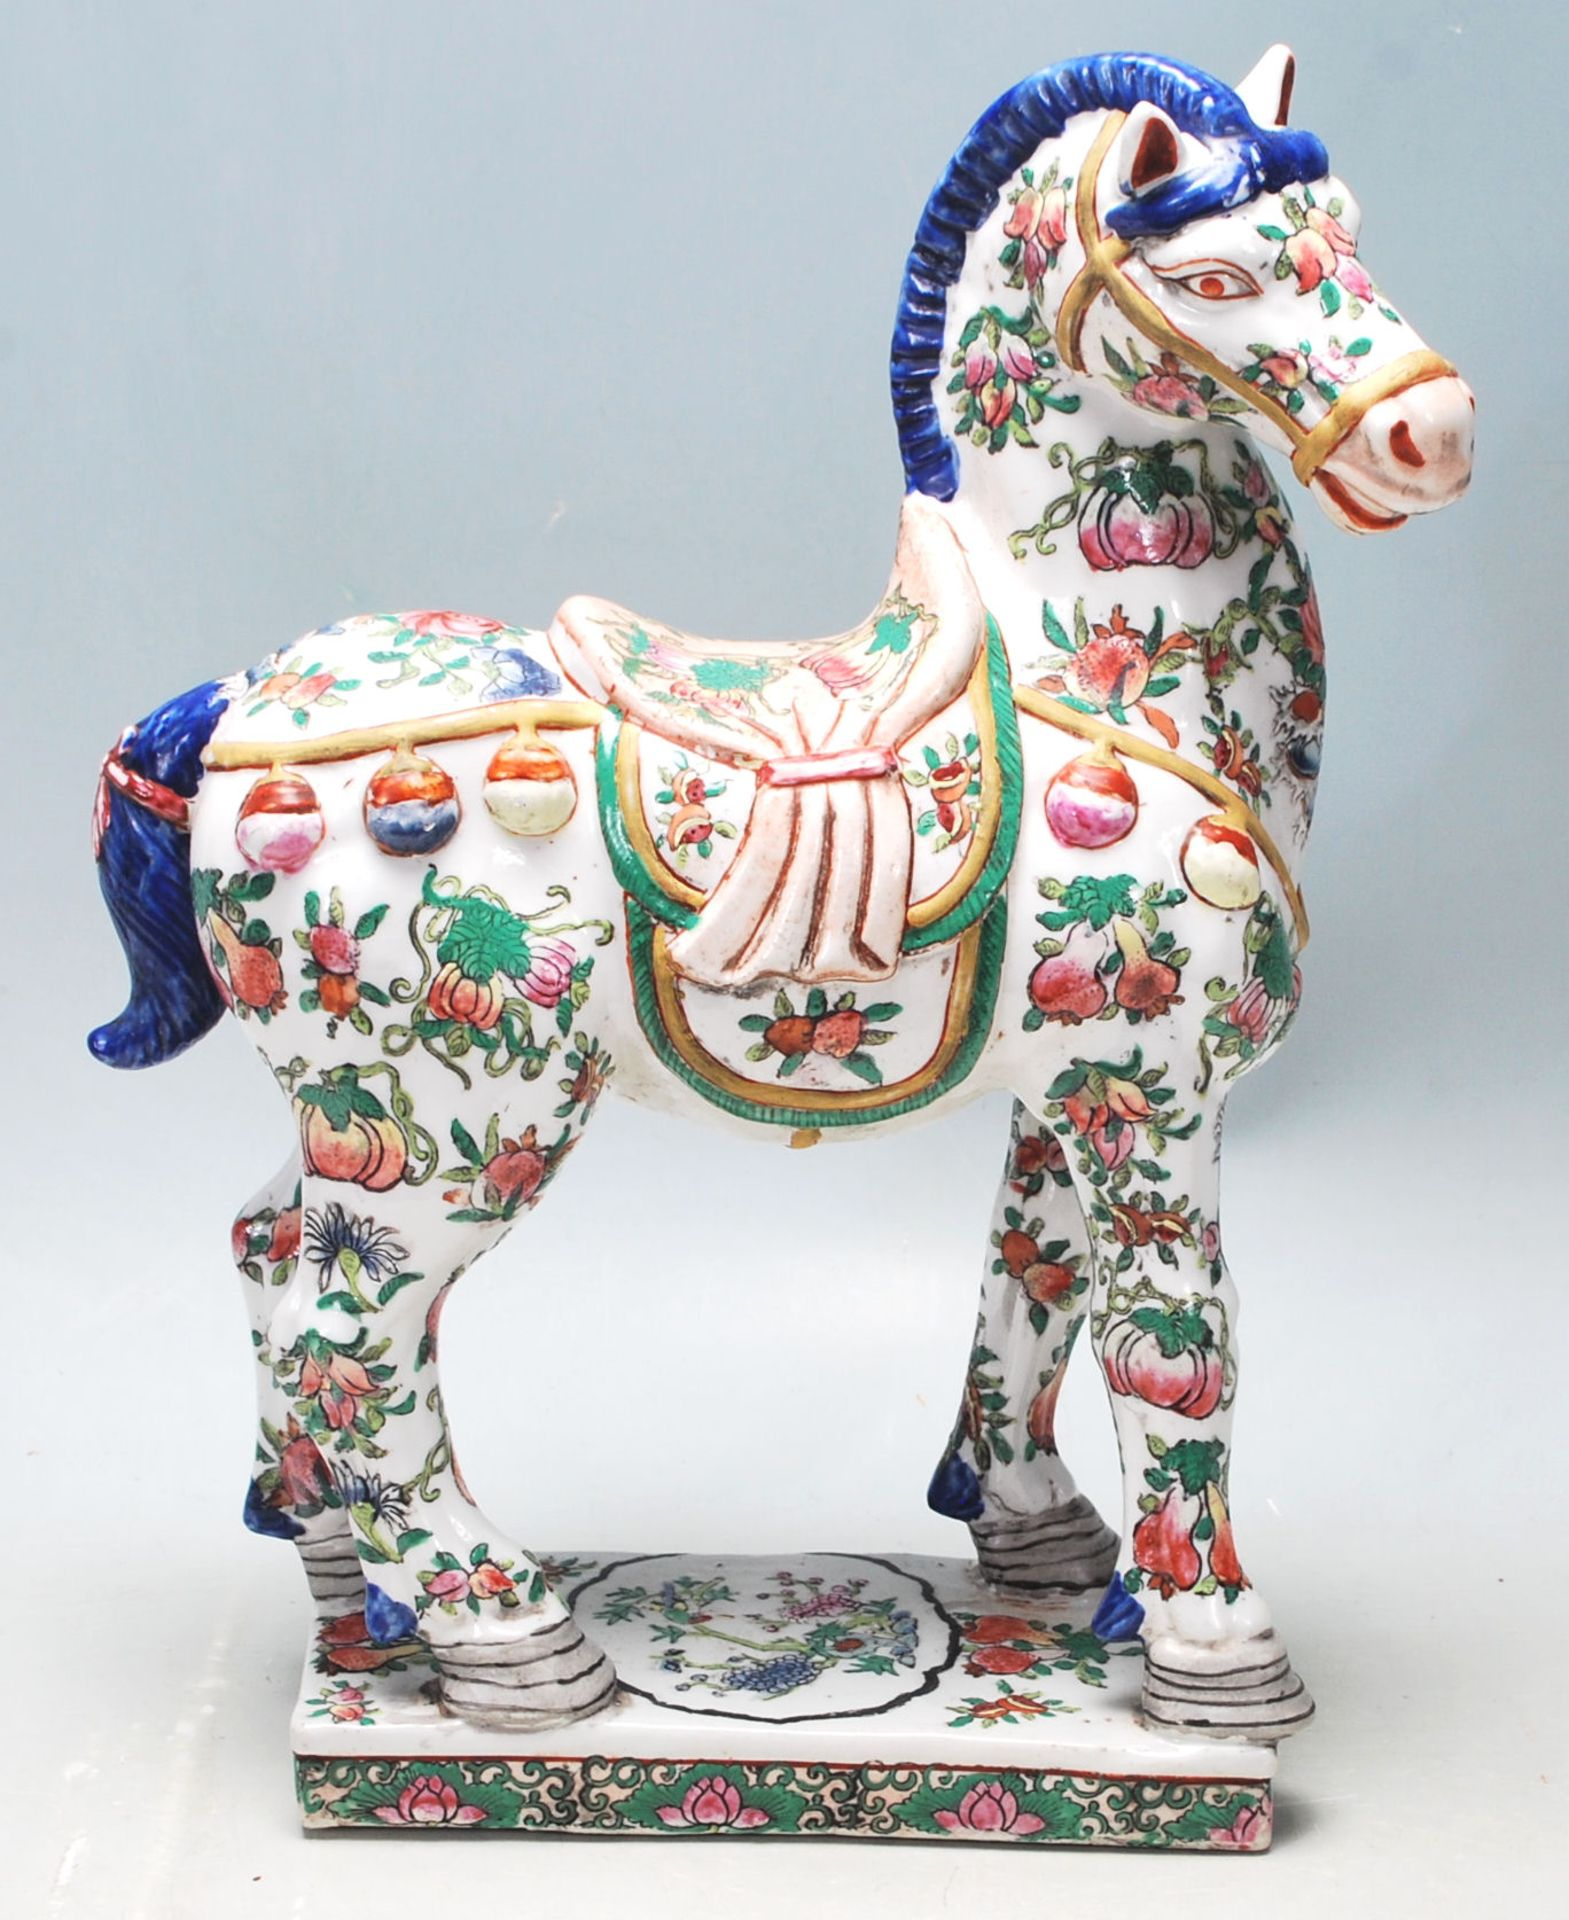 Los 42 - A 20th Century Chinese oriental Tang horse statue in the manner of Tang Dynasty with famille verte